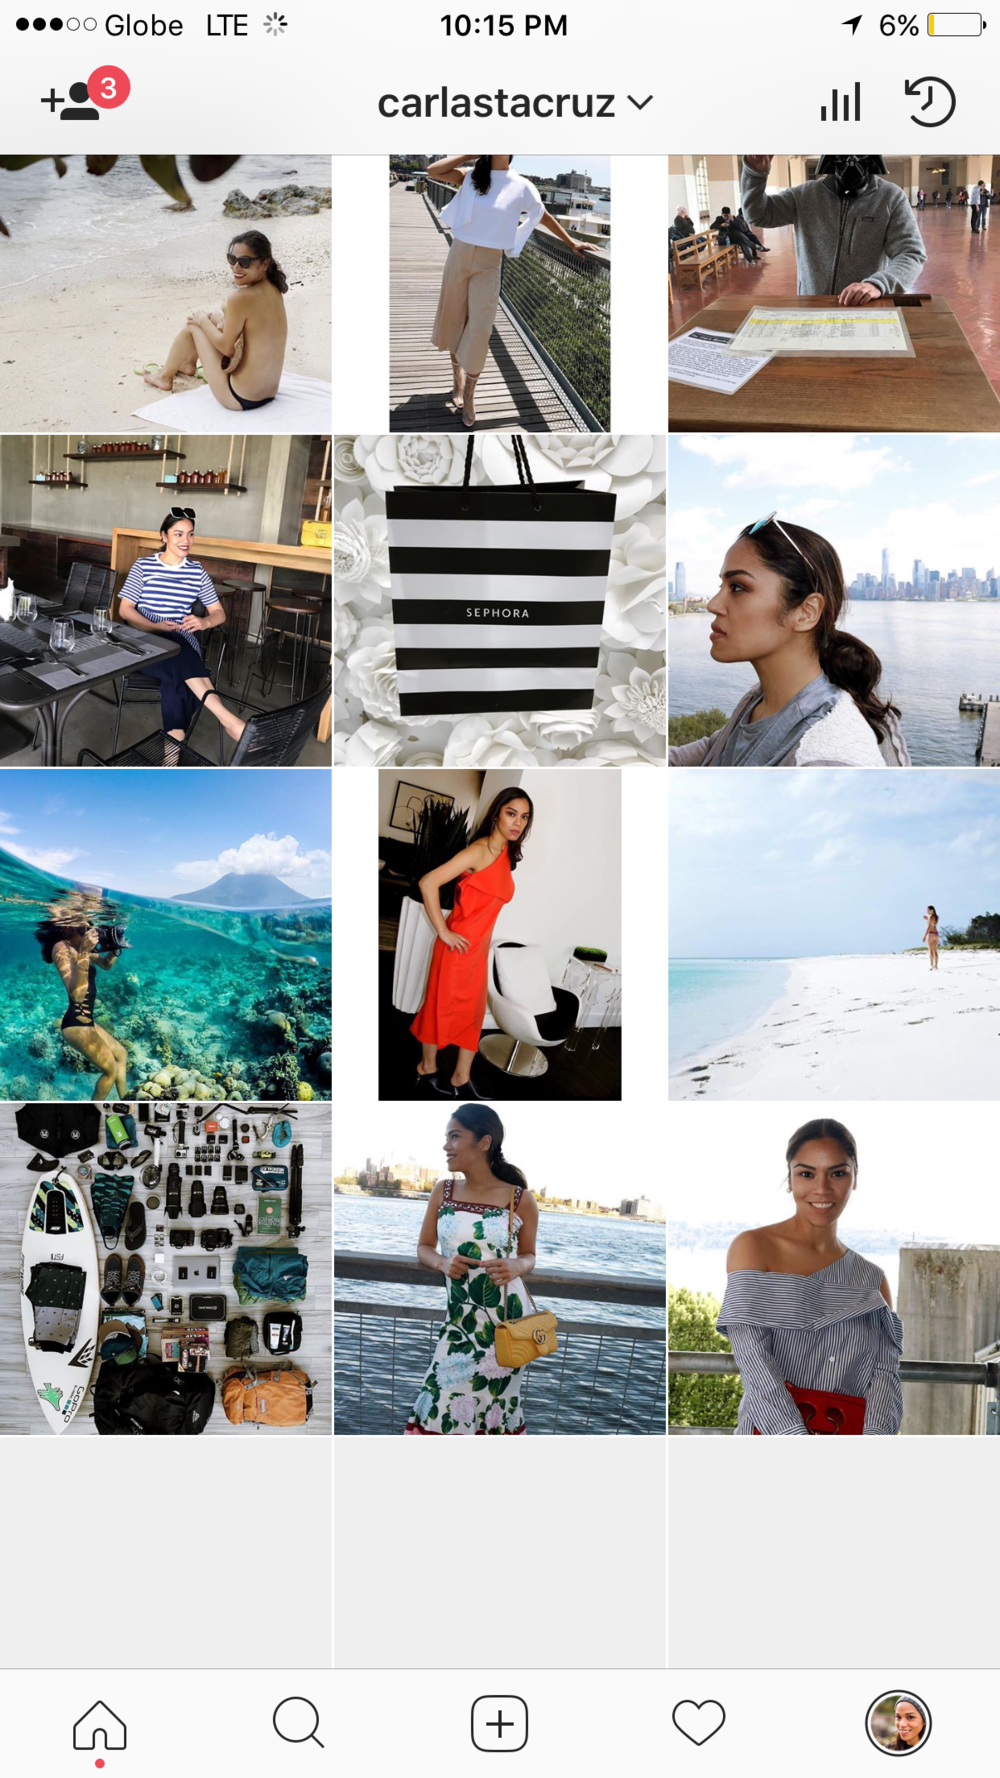 Carla Sta Cruz' Instagram account